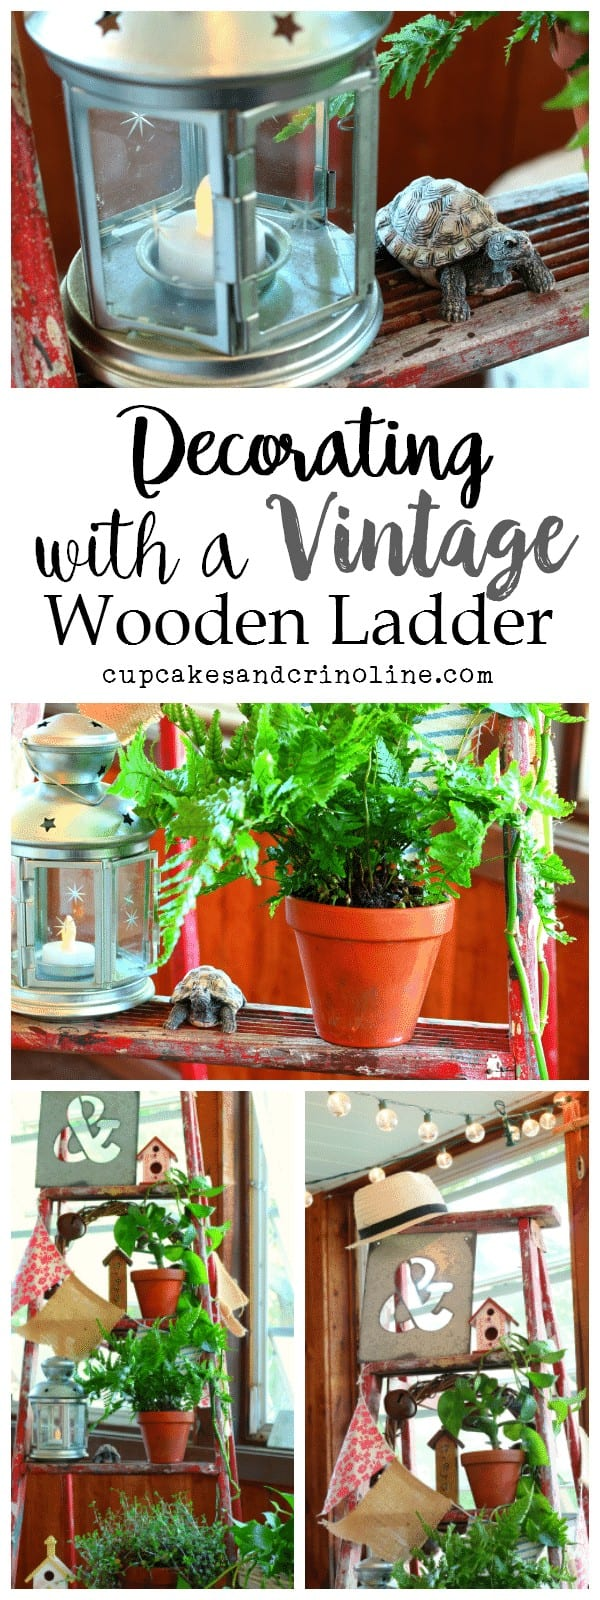 Decorating with a Vintage wooden ladder - more photos and ideas at cupcakesandcrinoline.com